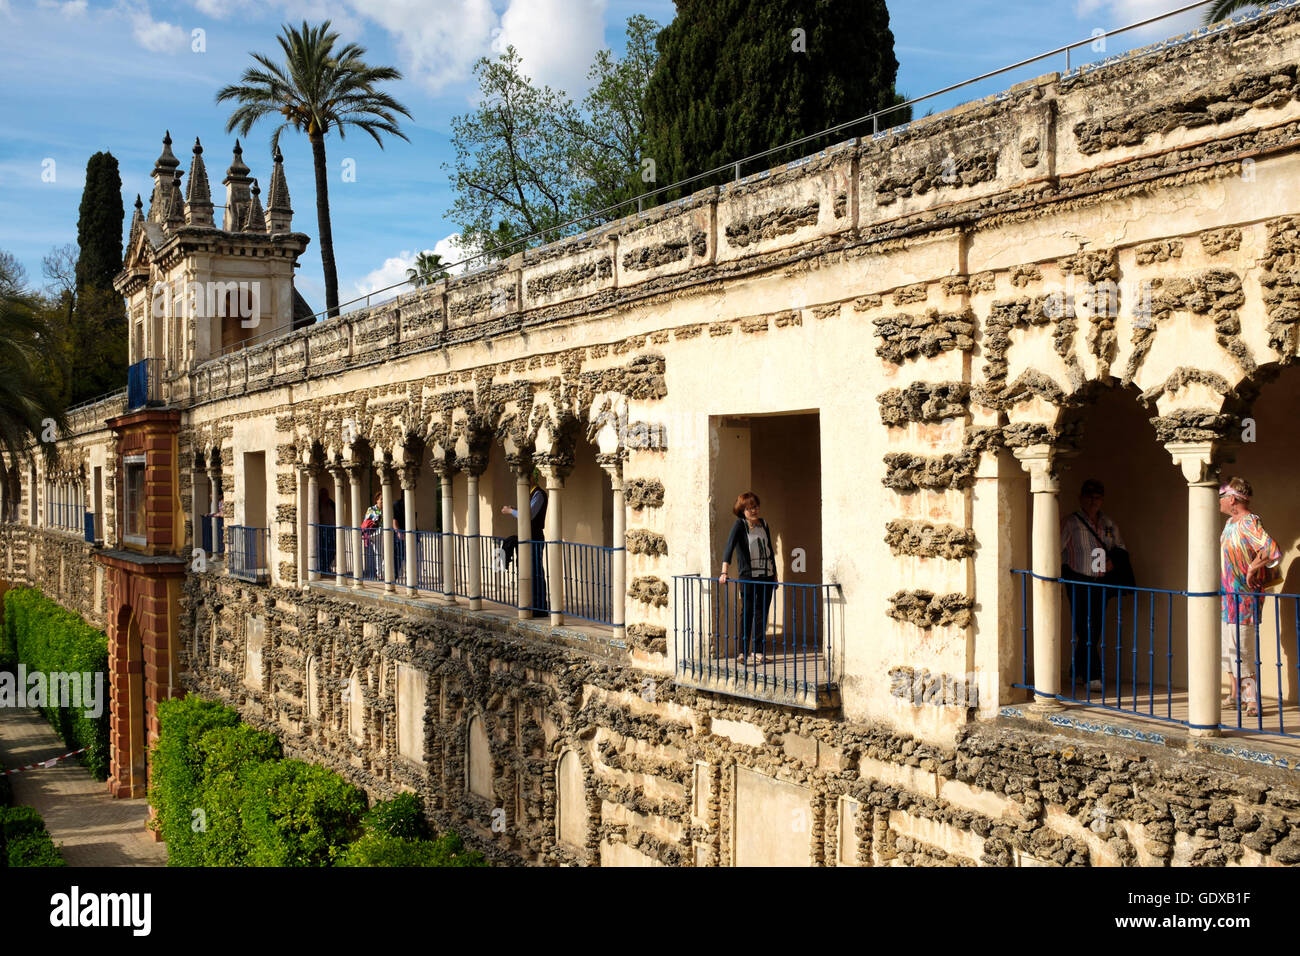 galeria del grutesco in the jardin del estanque of the real alcazar seville spain